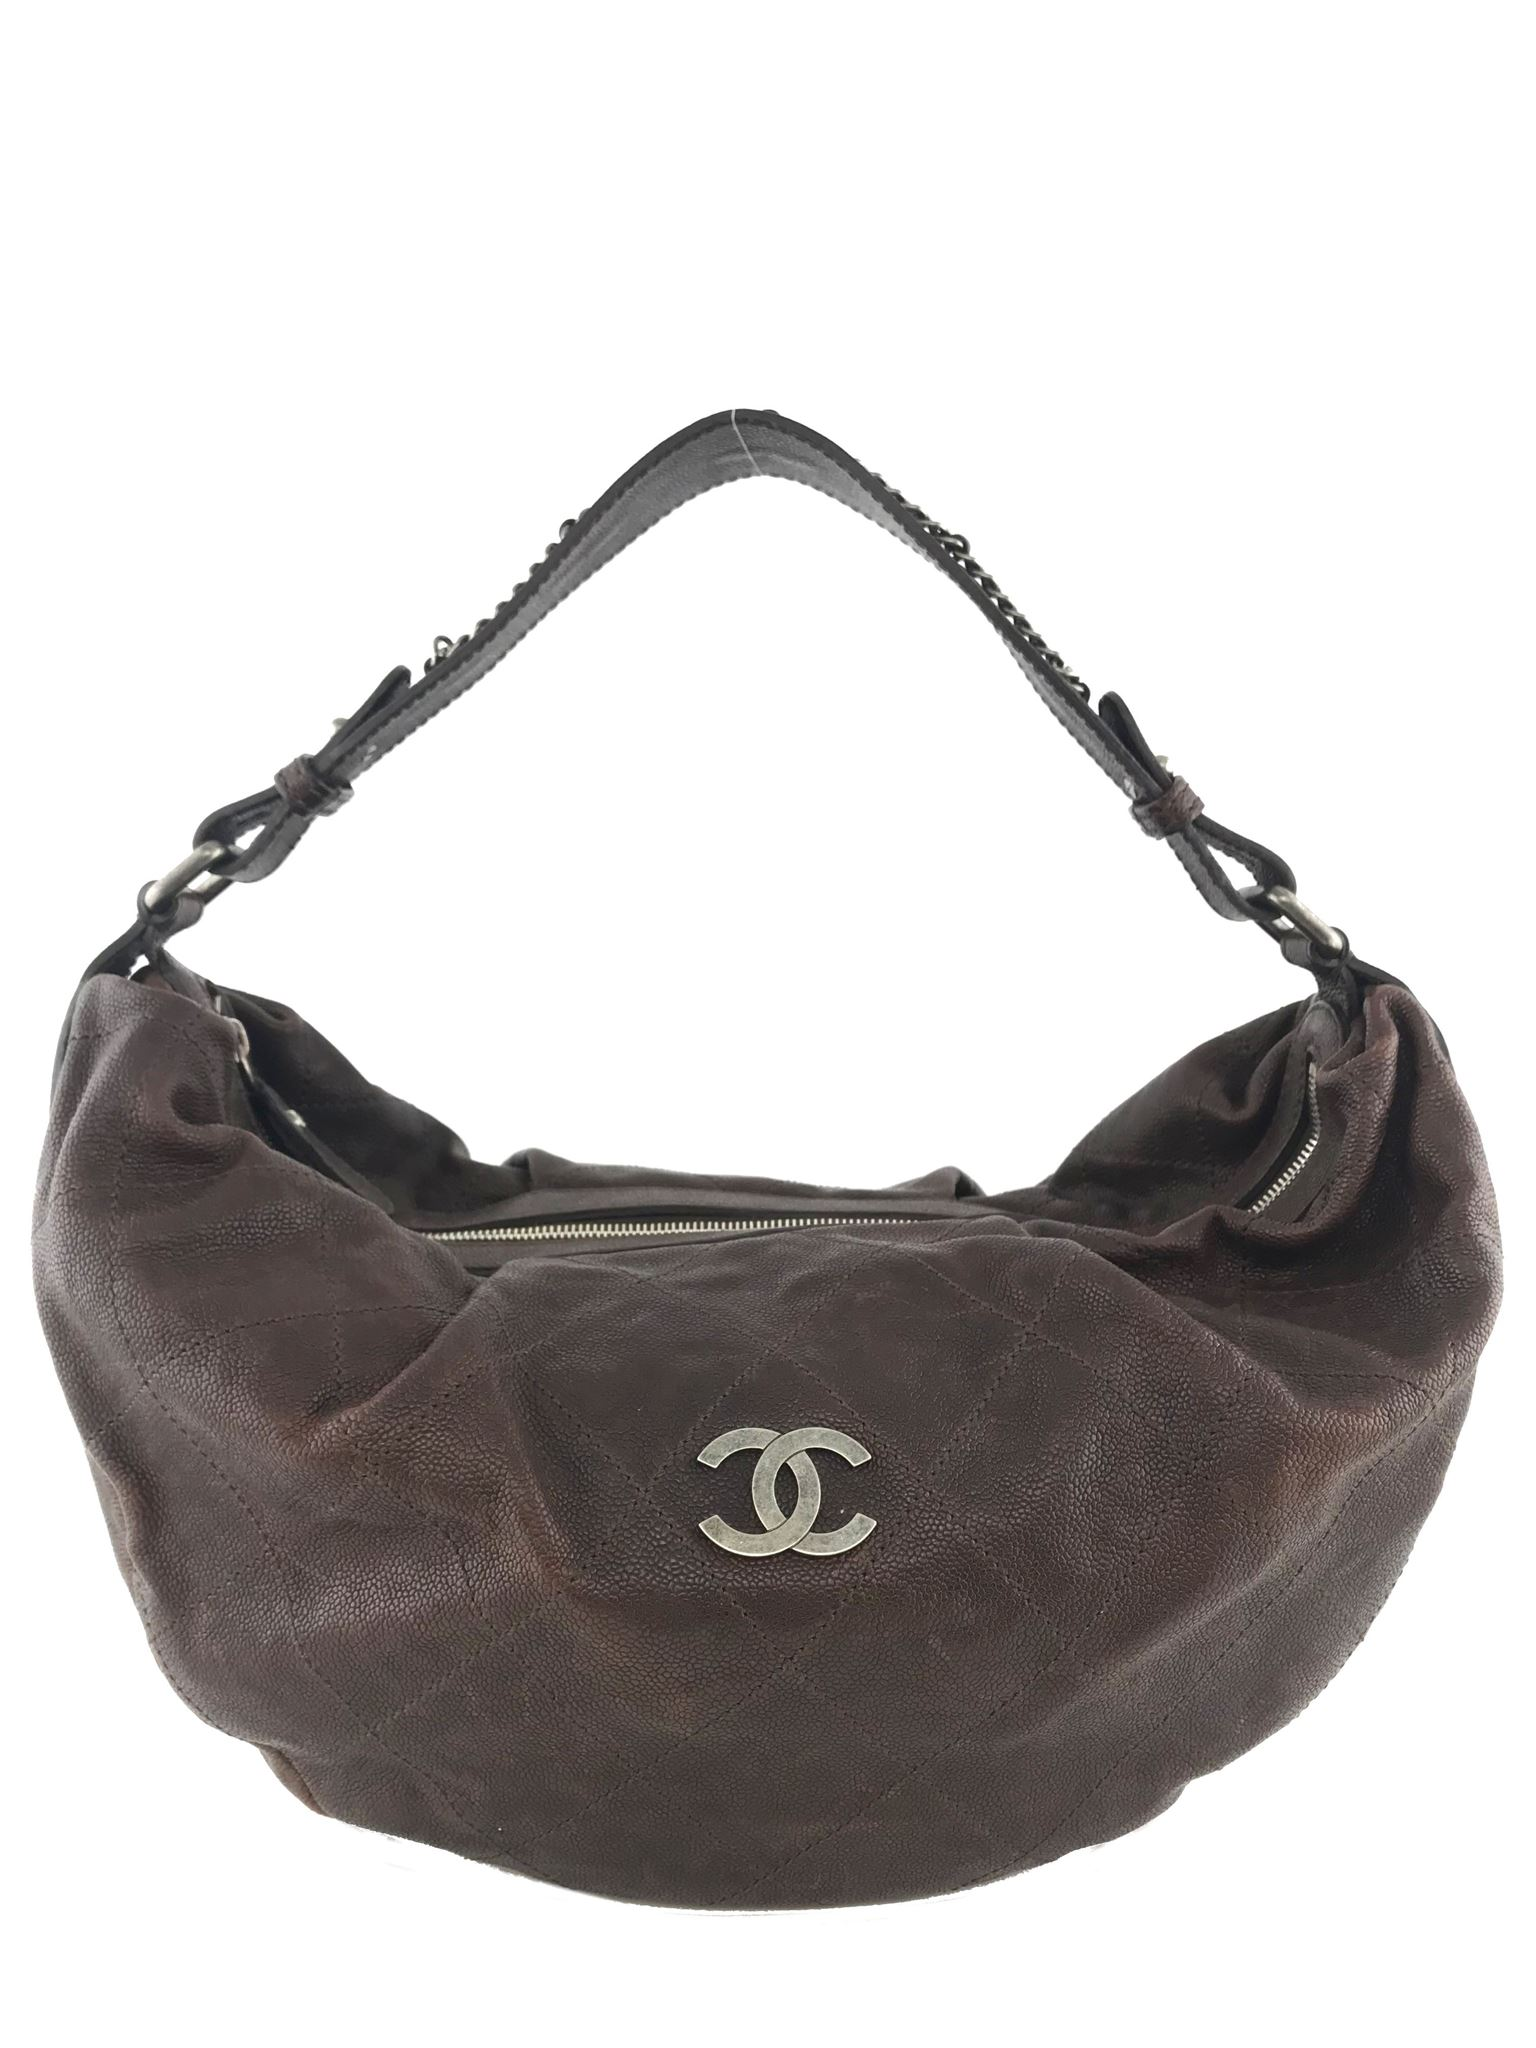 bfab3d0f702590 Chanel Caviar Leather Outdoor Ligne Hobo. Liquid error: Index was out of  range. Must be non-negative and less than the size of the collection.